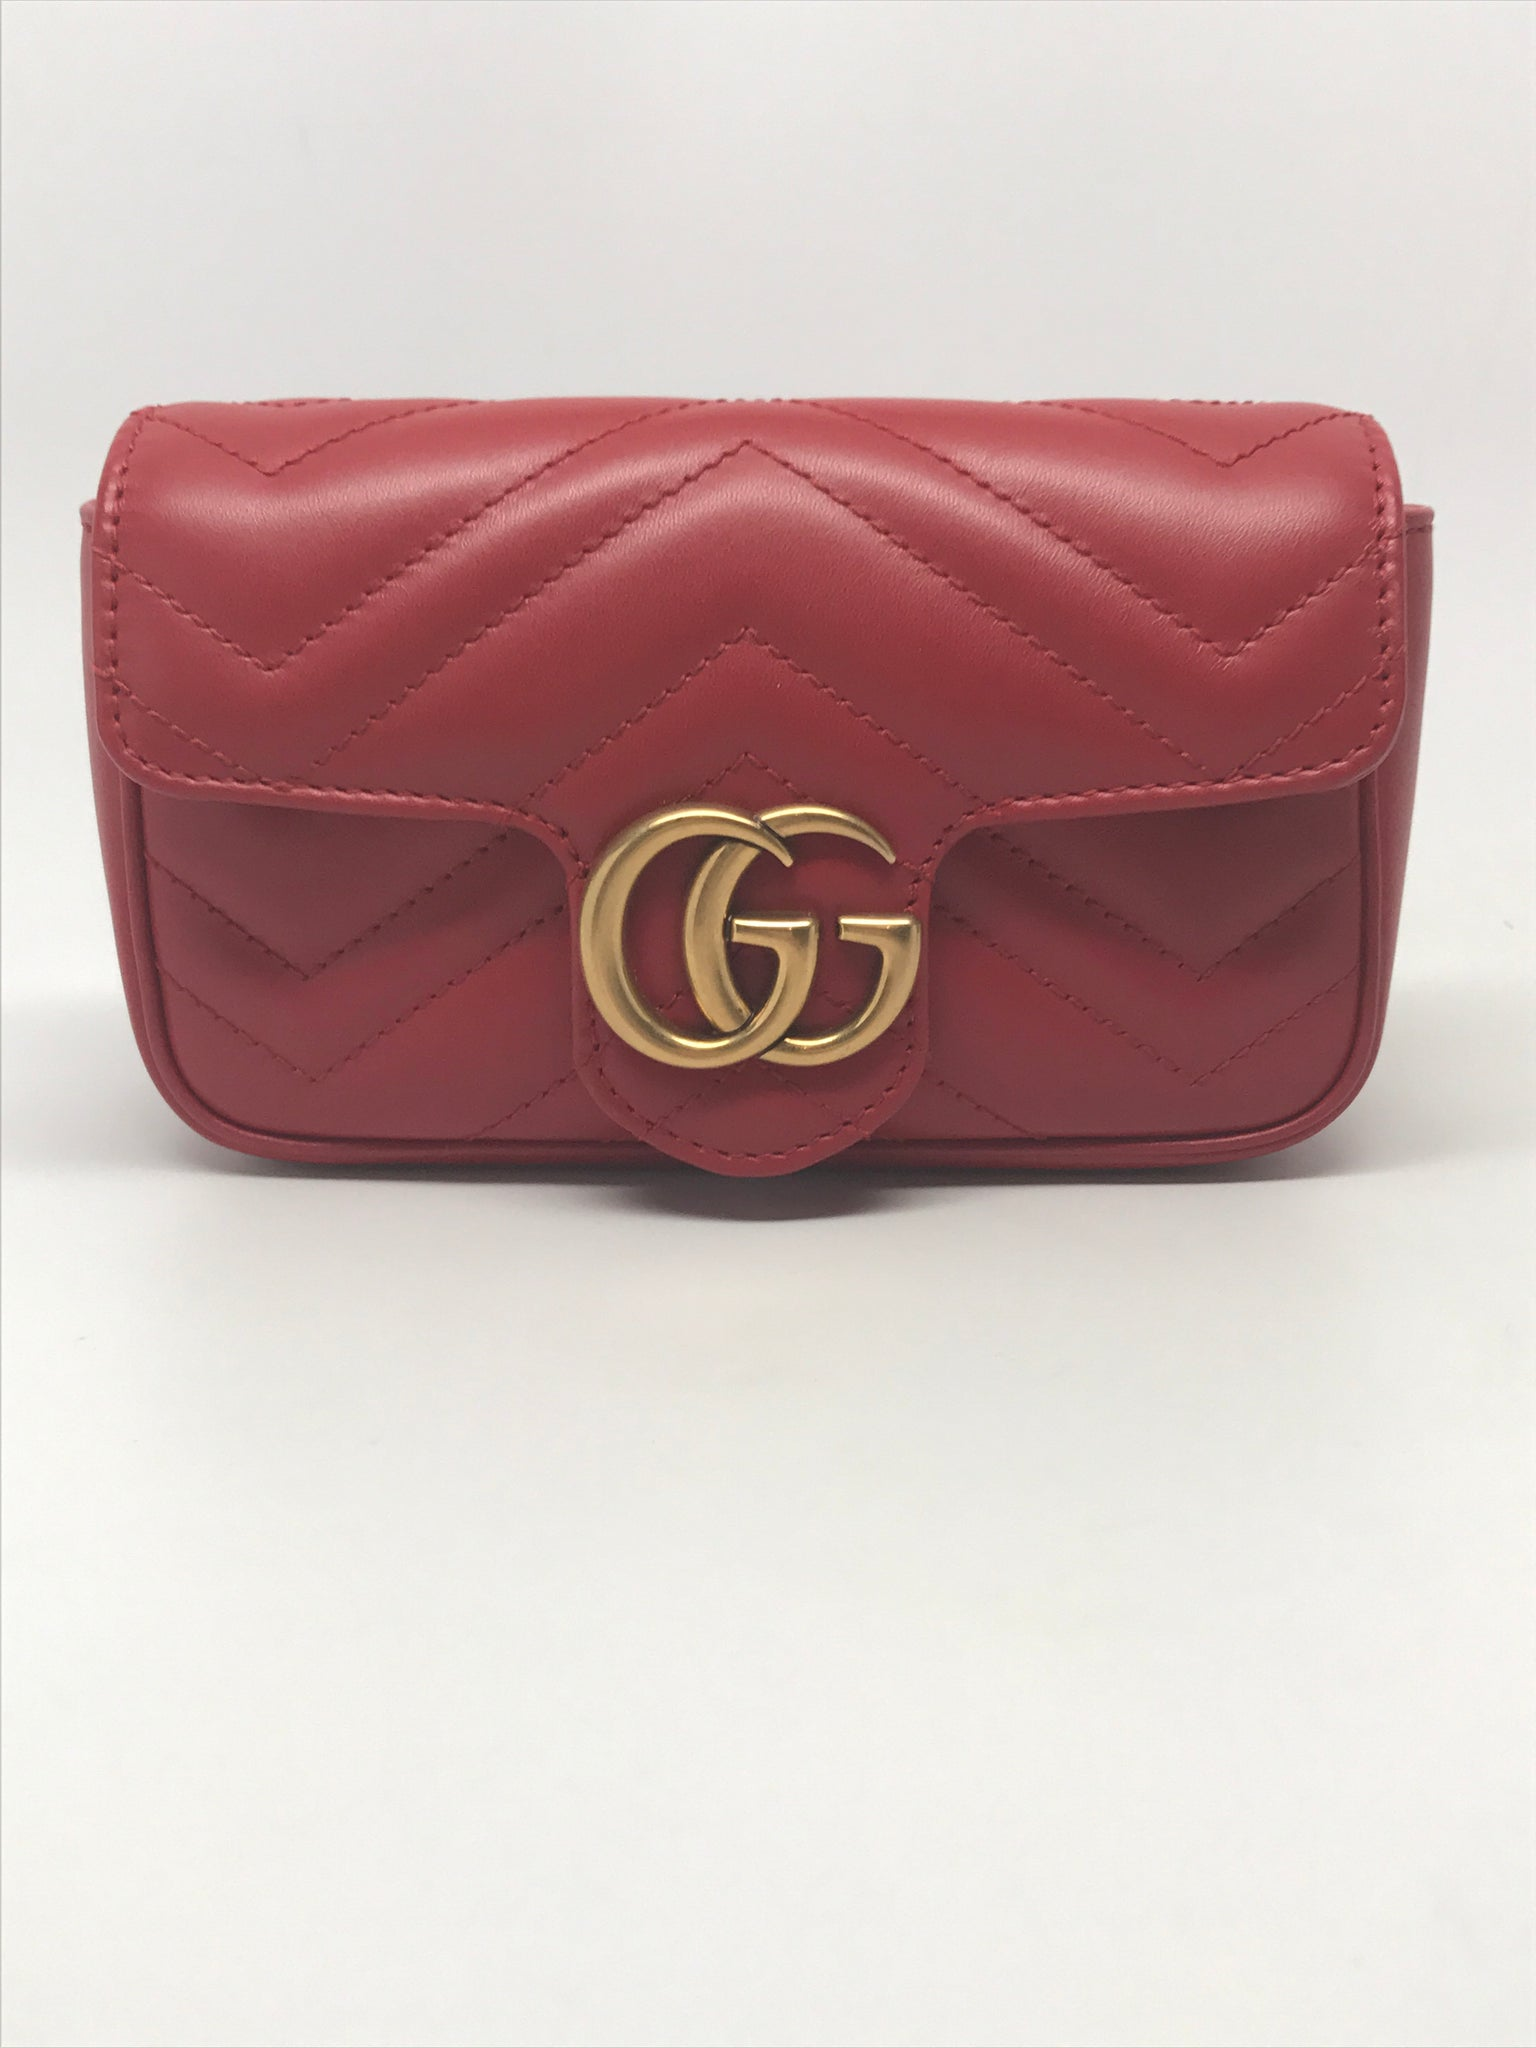 75078711fd9a GUCCI GG MARMONT SUPER MINI SHOULDER BAG IN HIBISCUS RED – Hebster Boutique